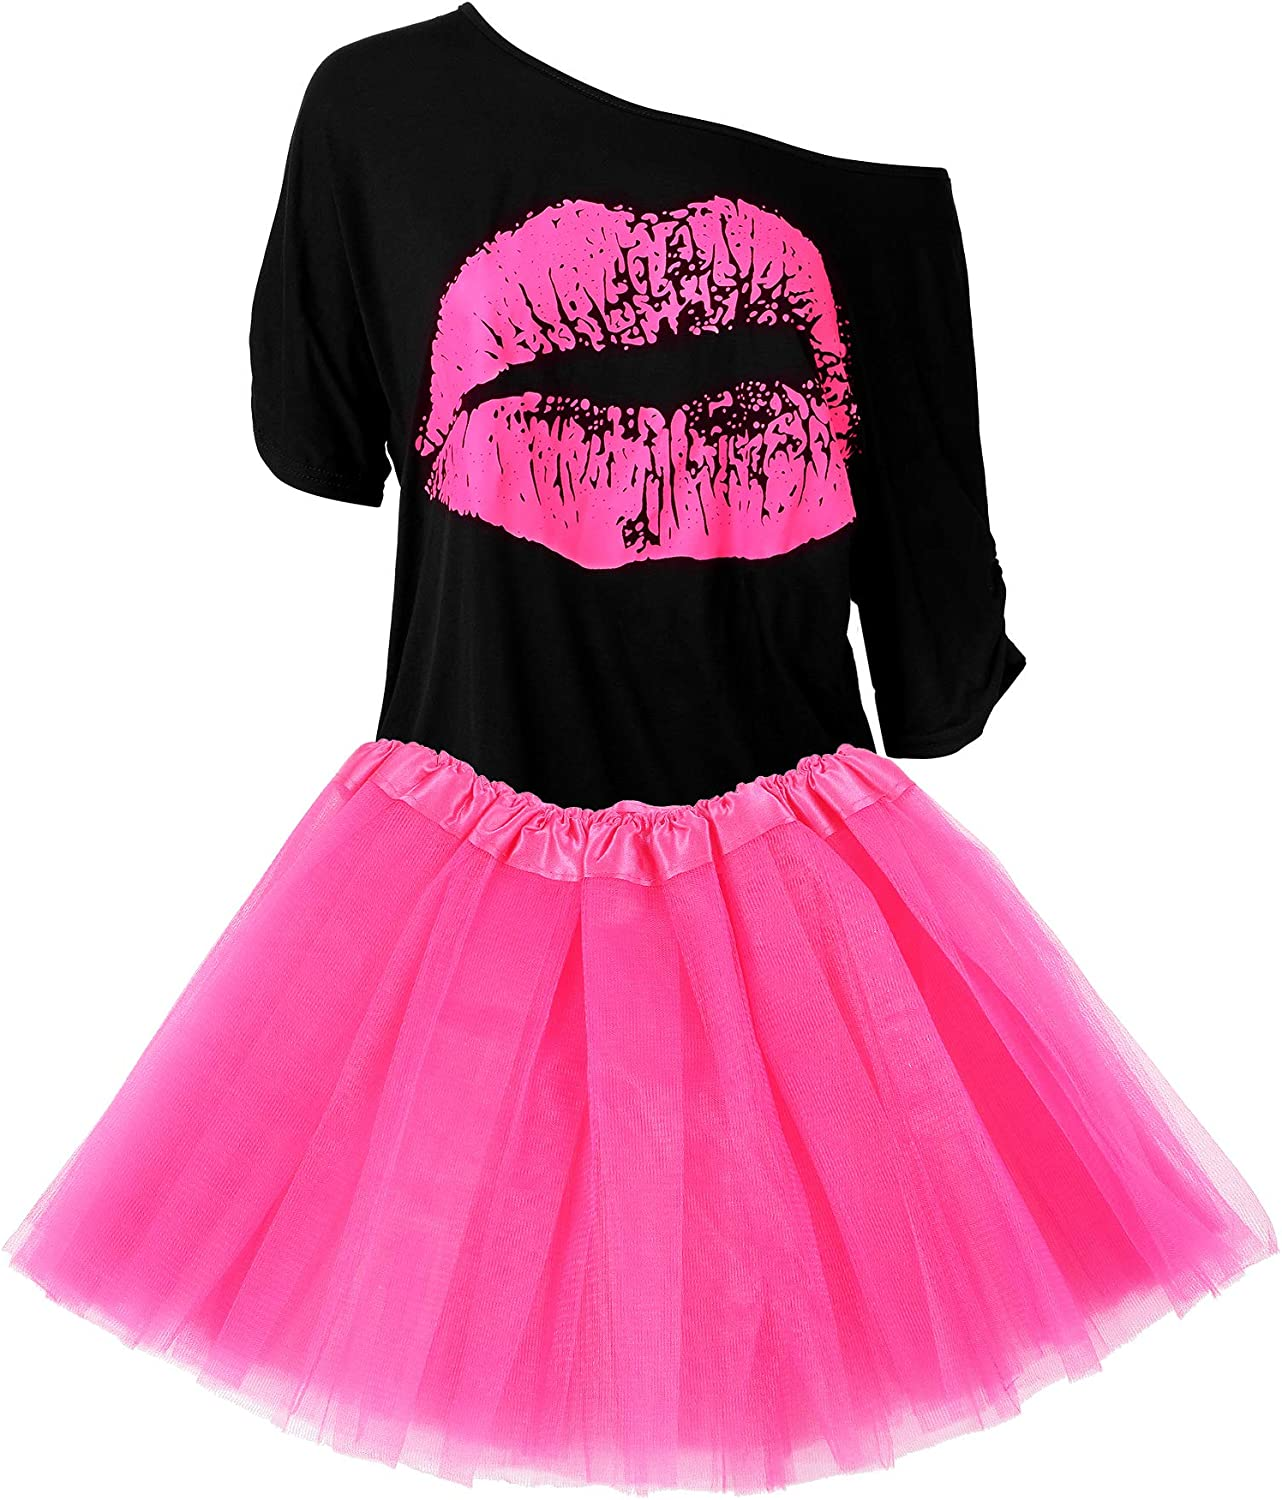 Women's 80s Costume Special price Accessories Set Print Lips Surprise price Fashion T-Shirt